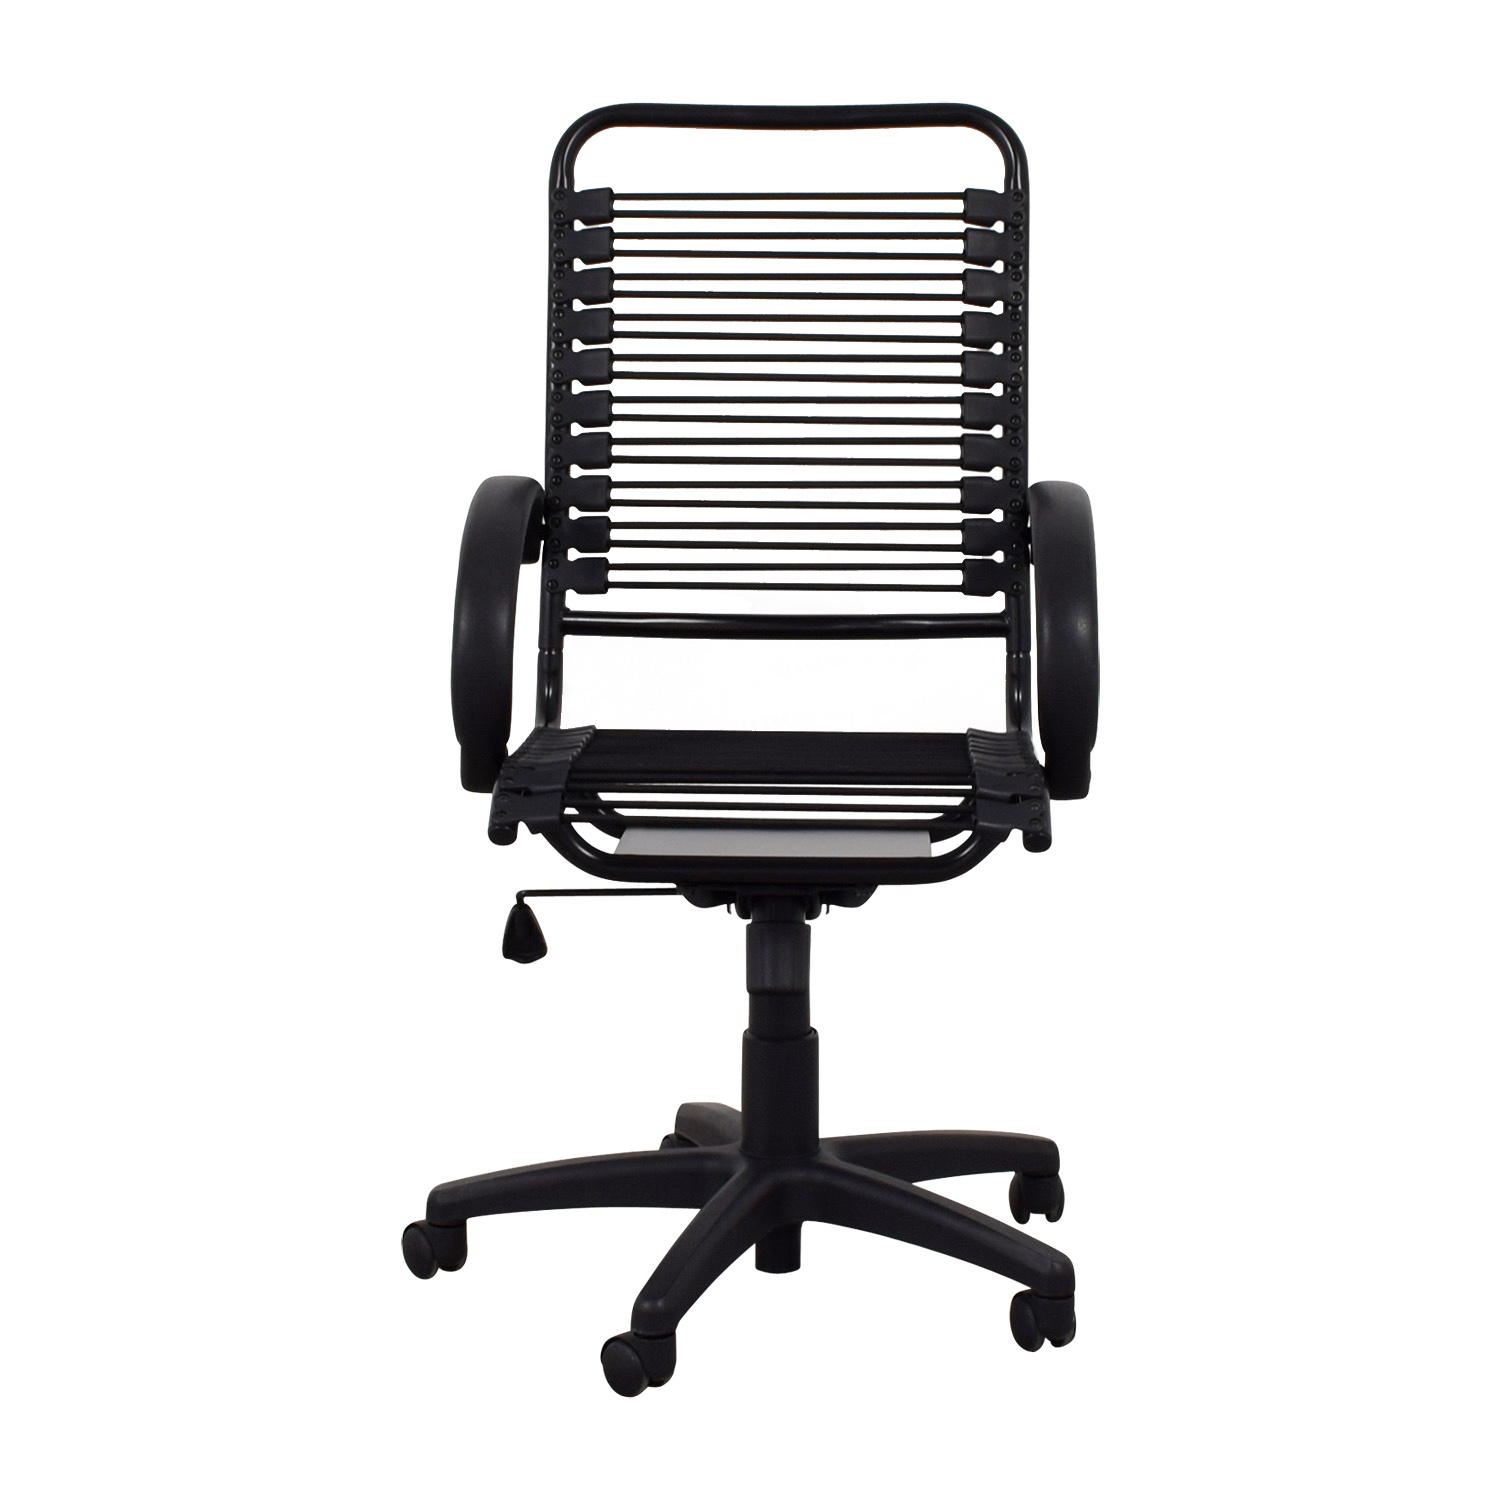 CB2 CB2 Black Studio Office Chair second hand